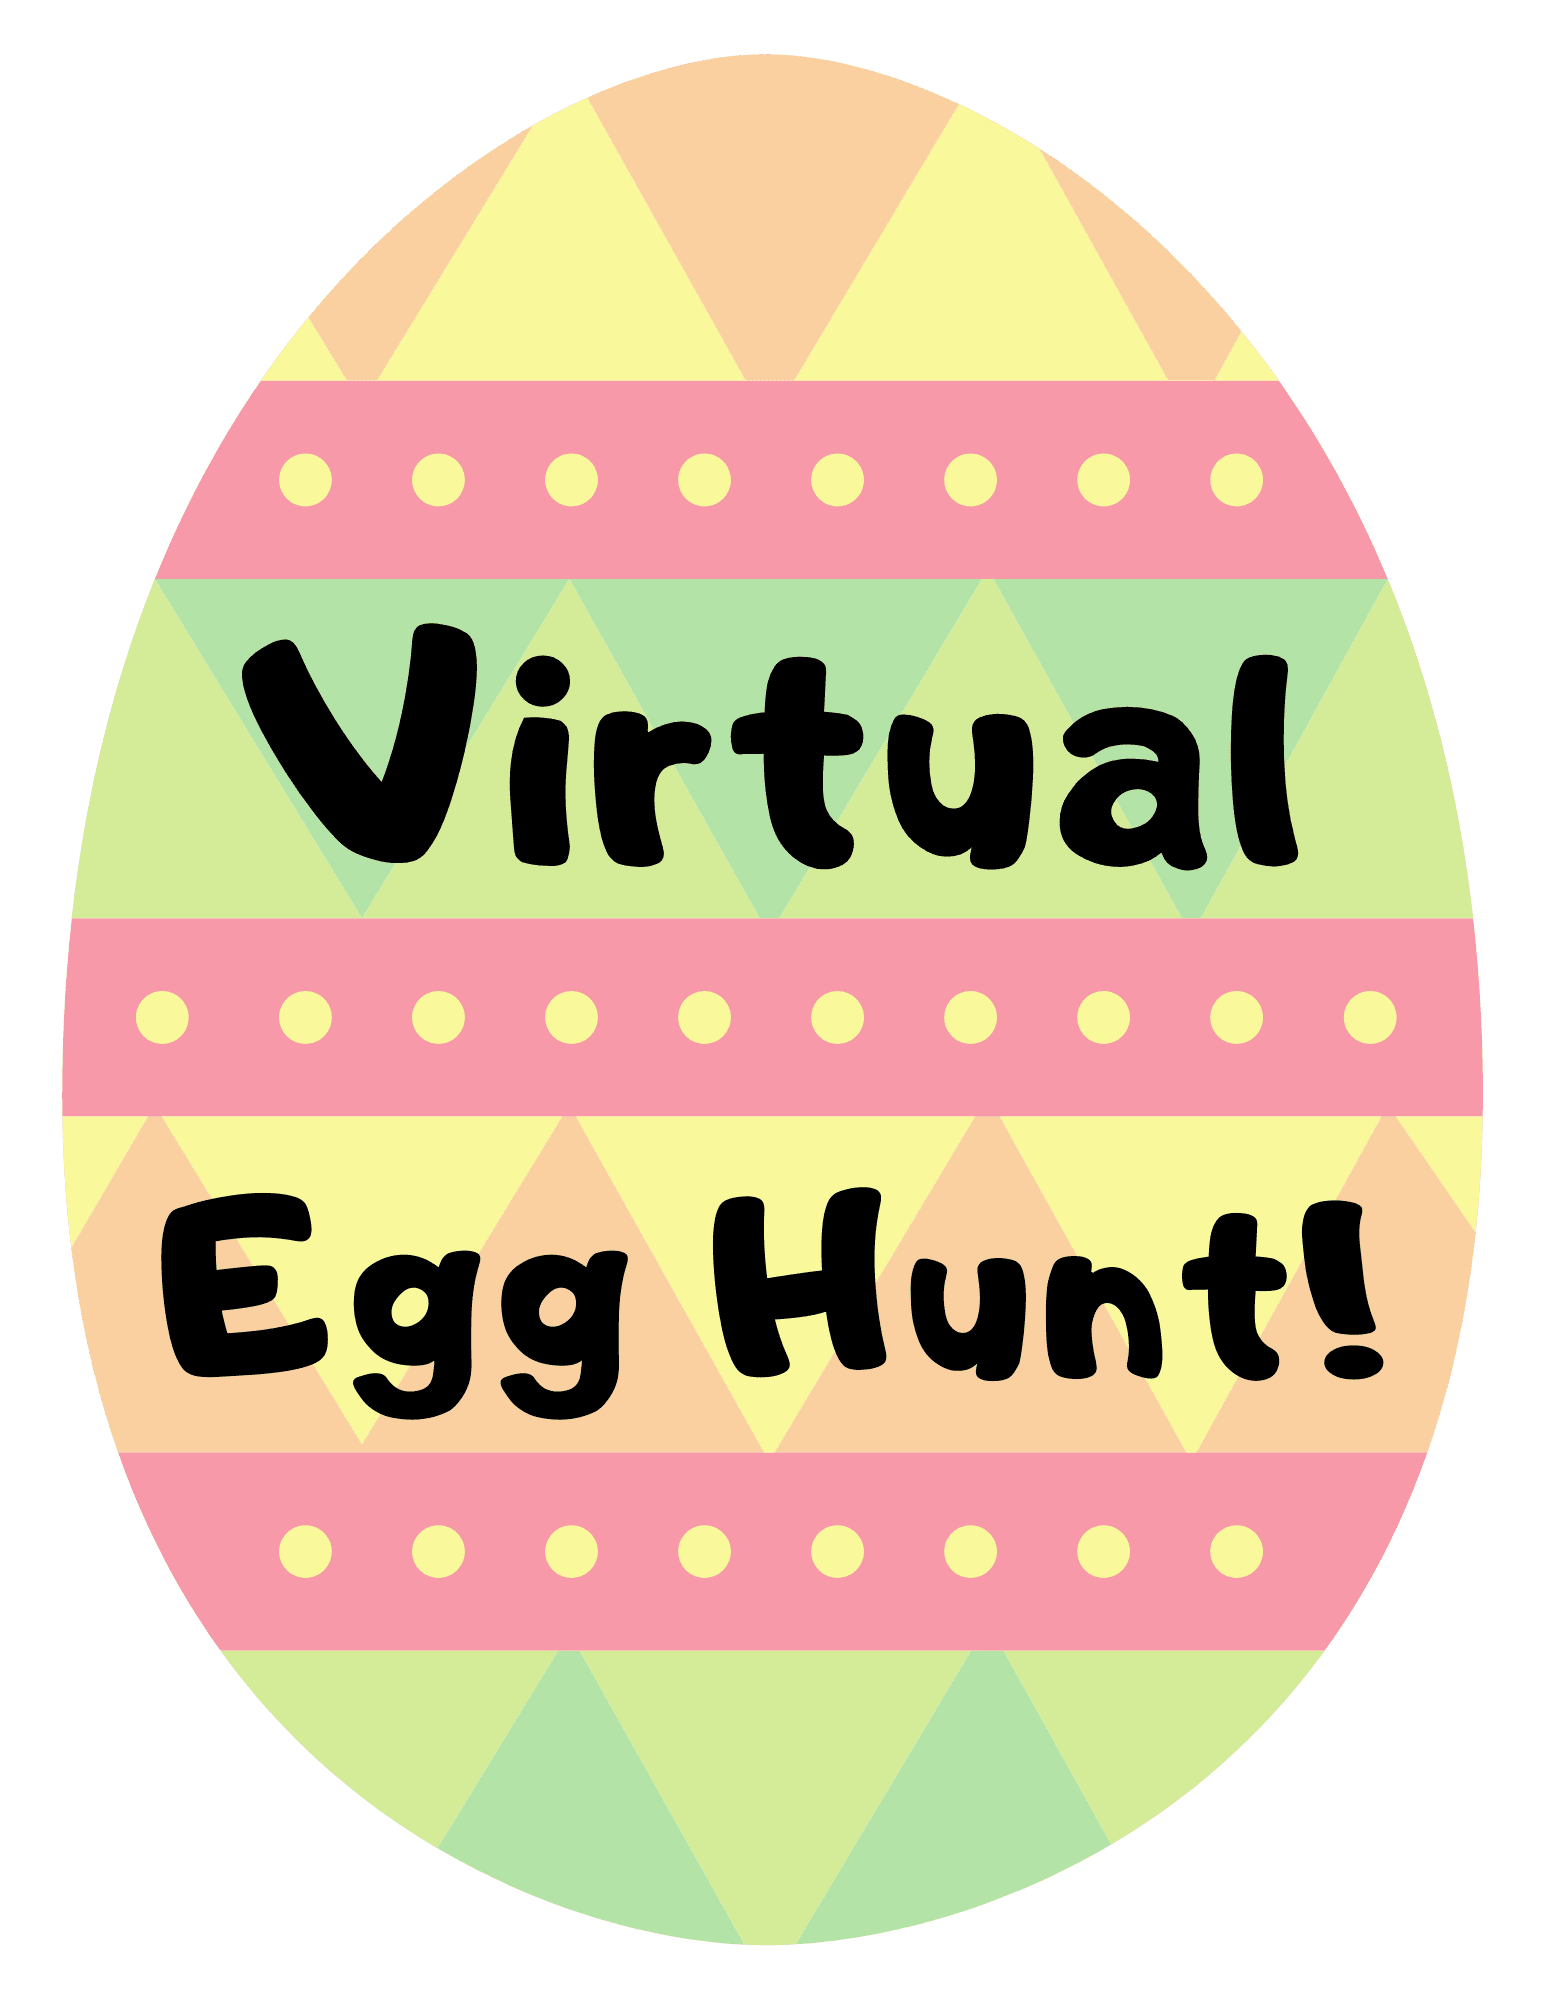 Virtual Egg Hunt Graphic